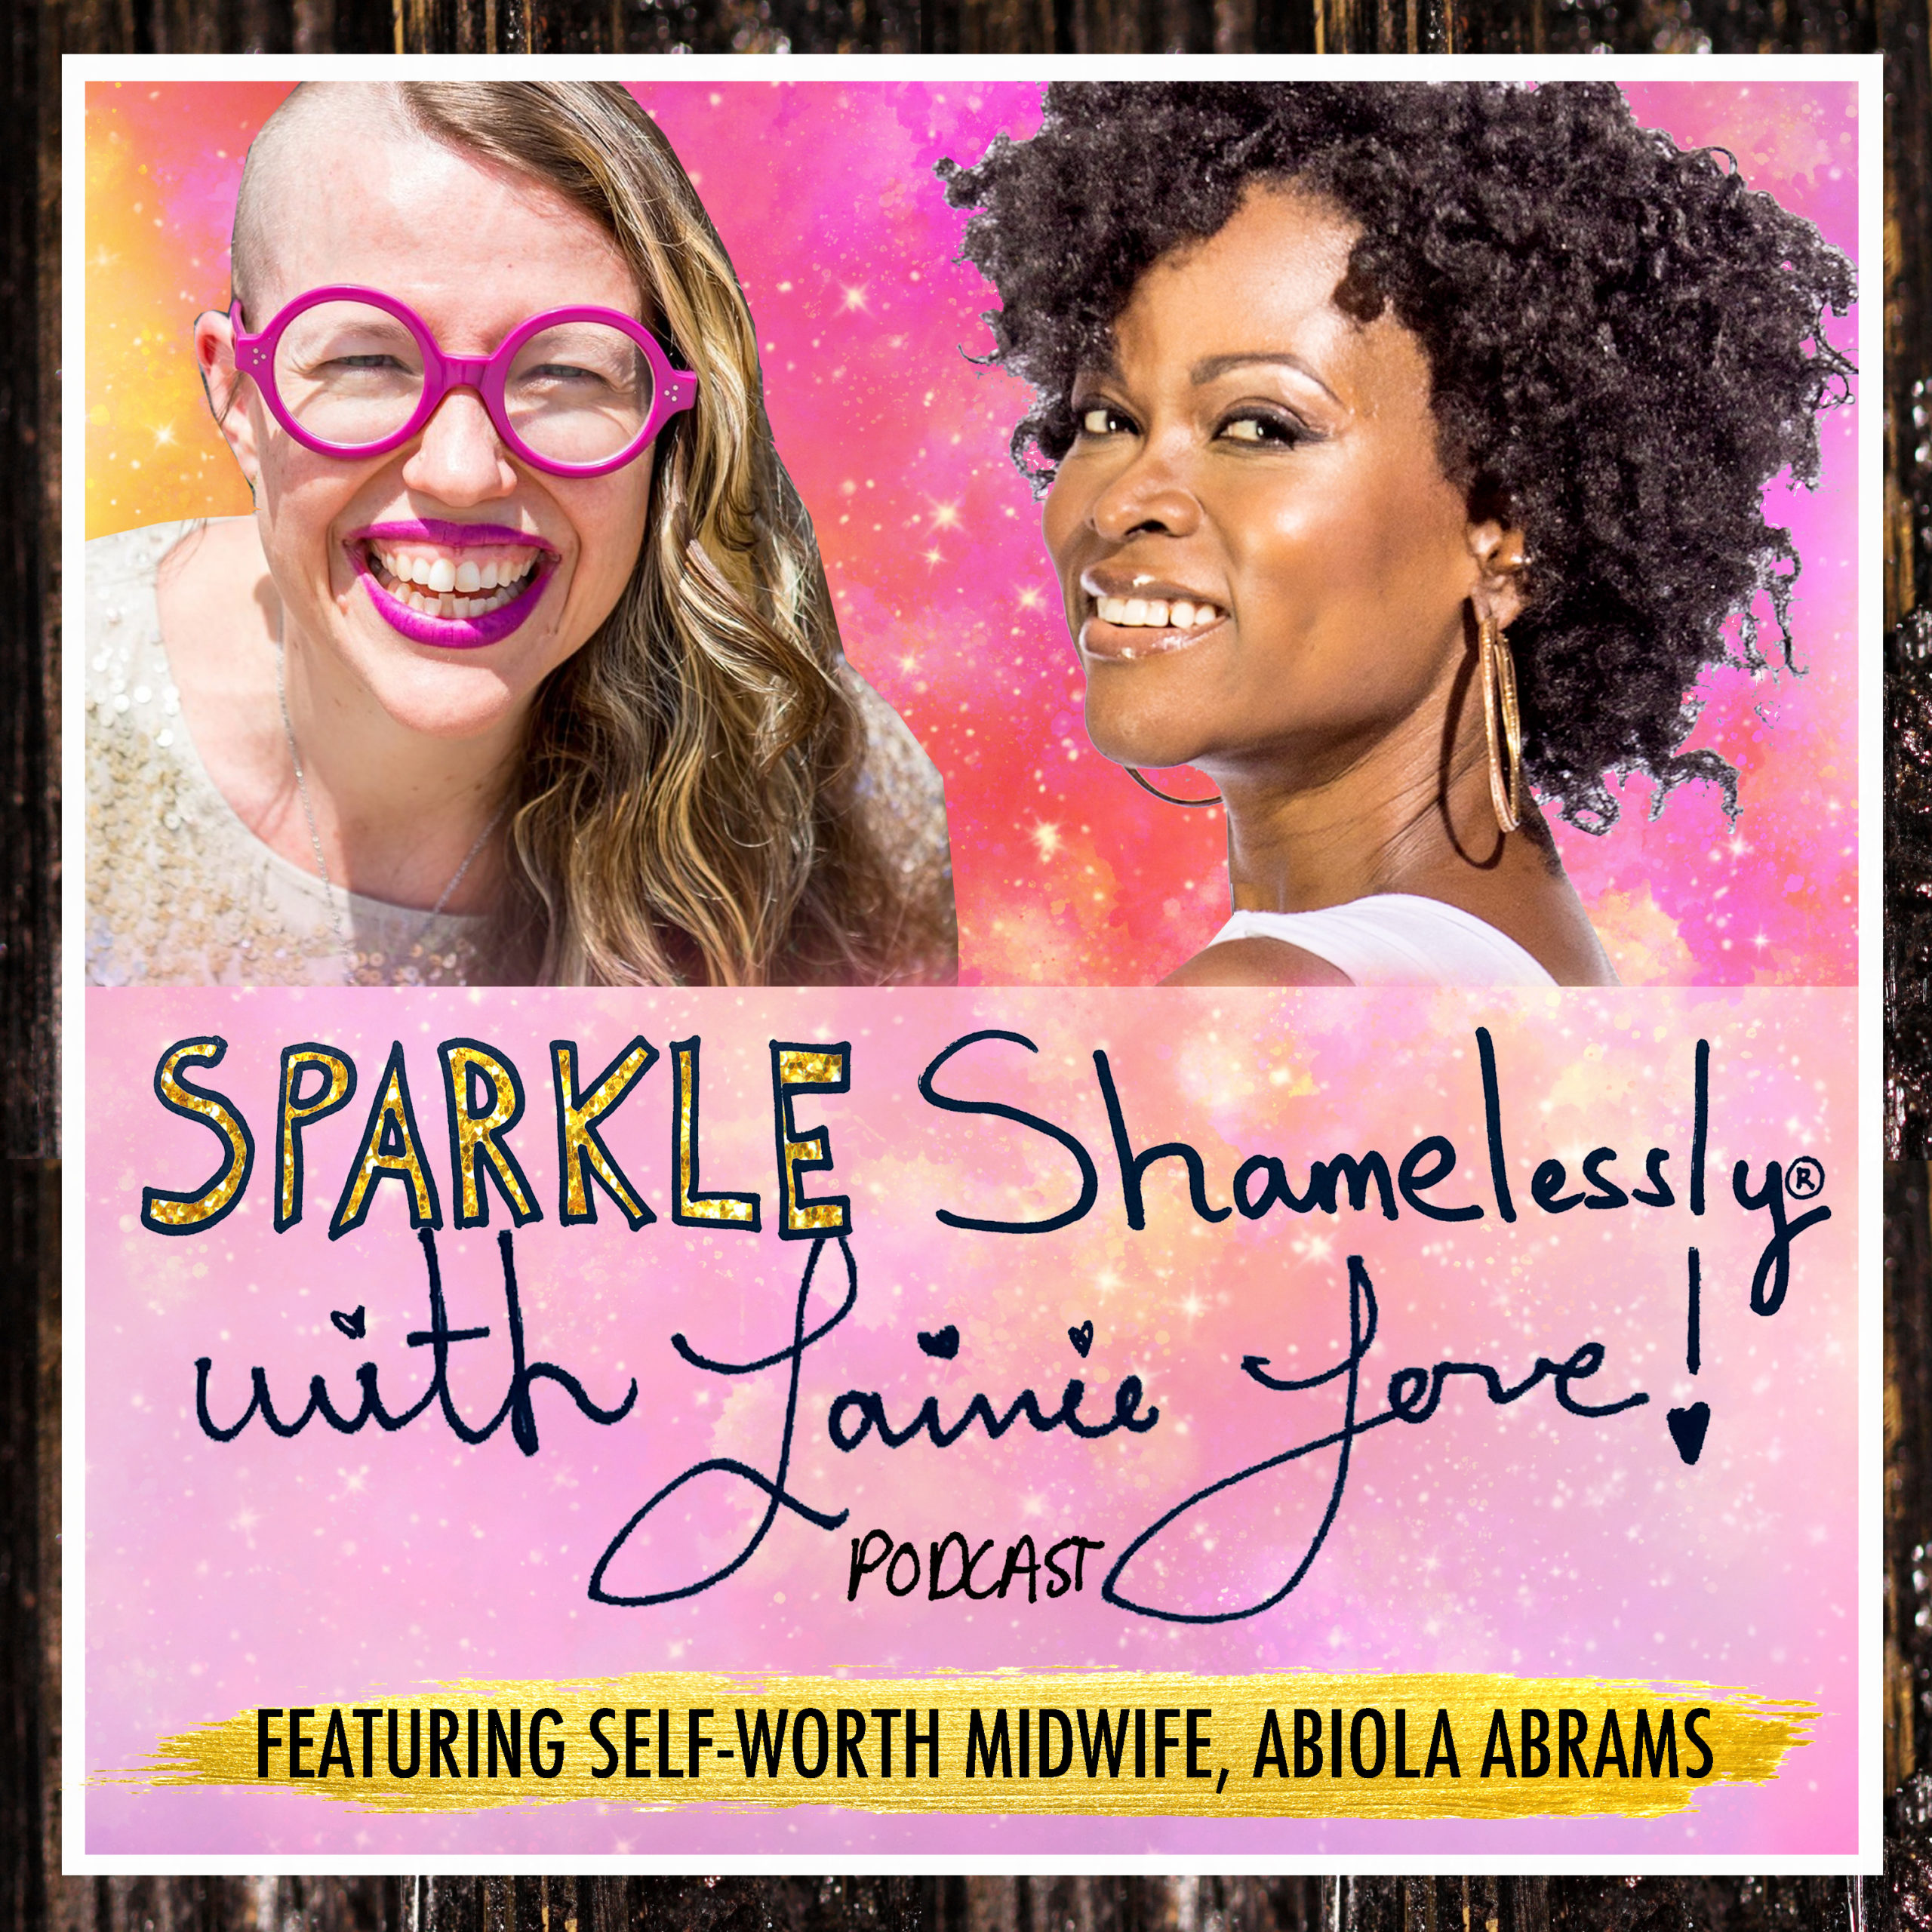 Sparkle Shamelessly Podcast Lainie and Abiola